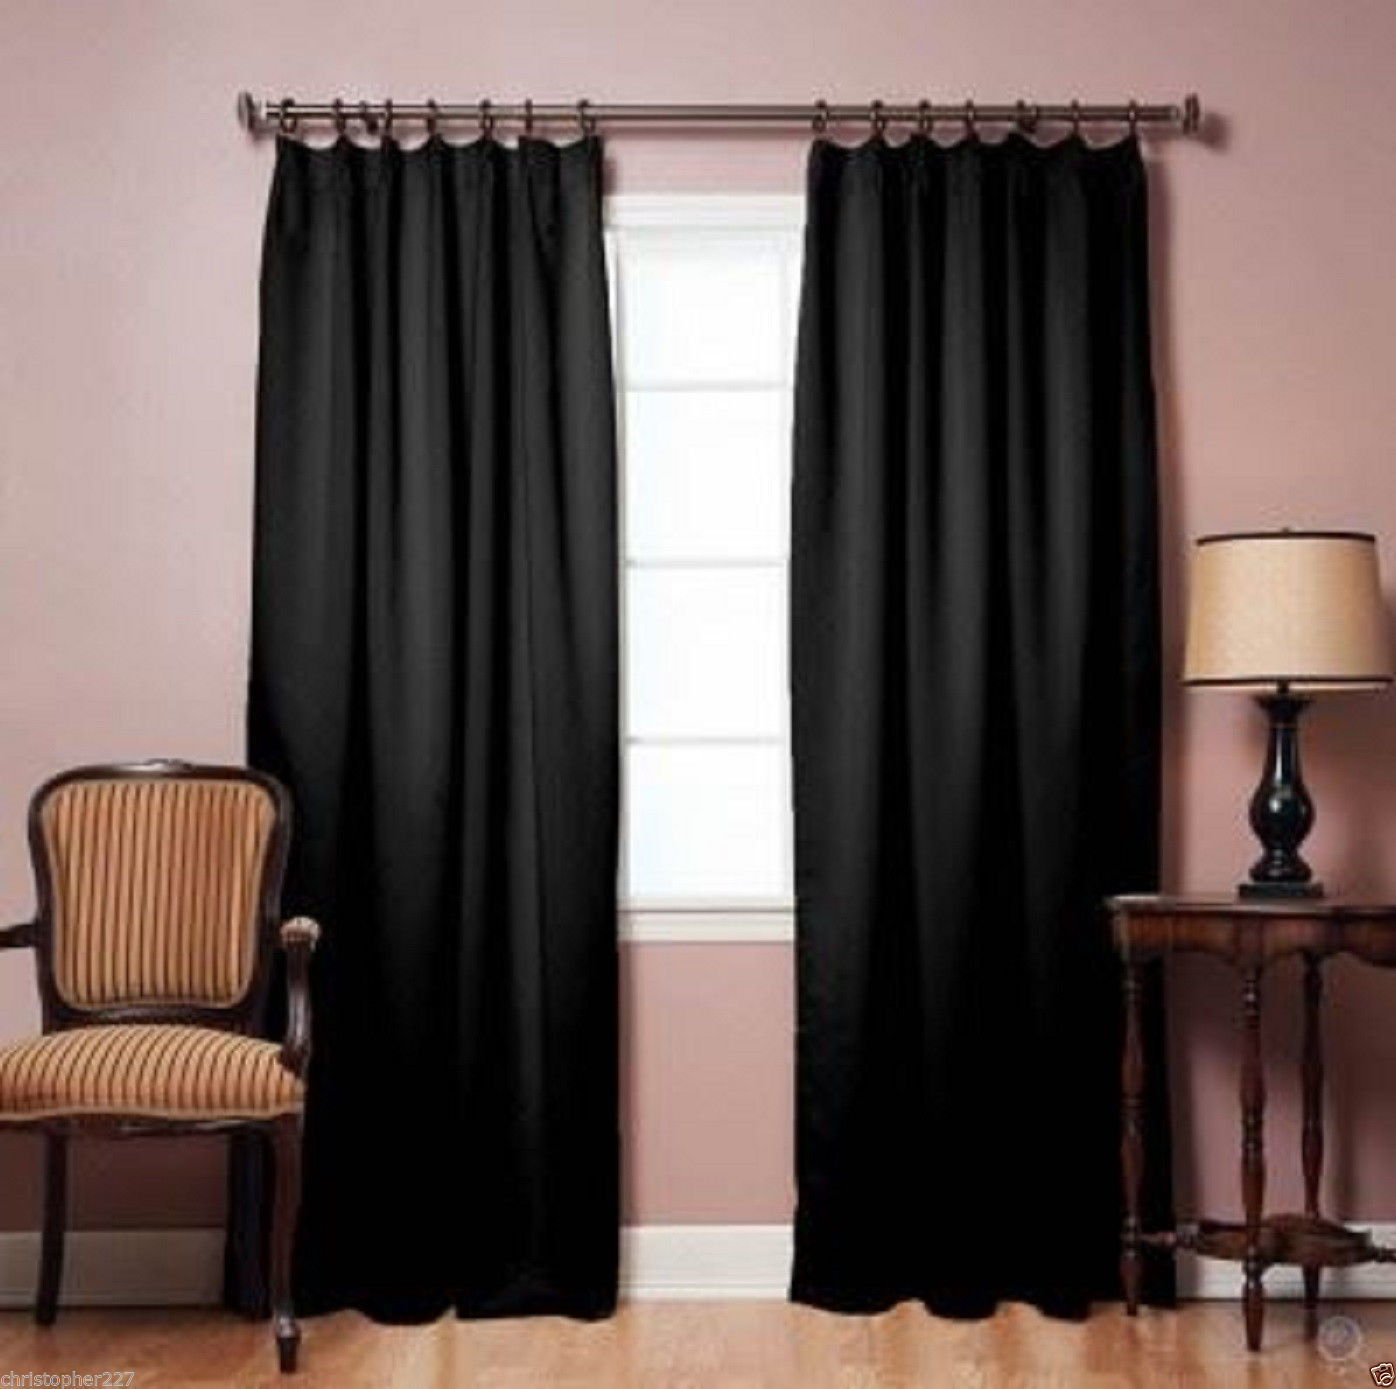 Home Blackout Windows Curtains Insulated Treatments Patio